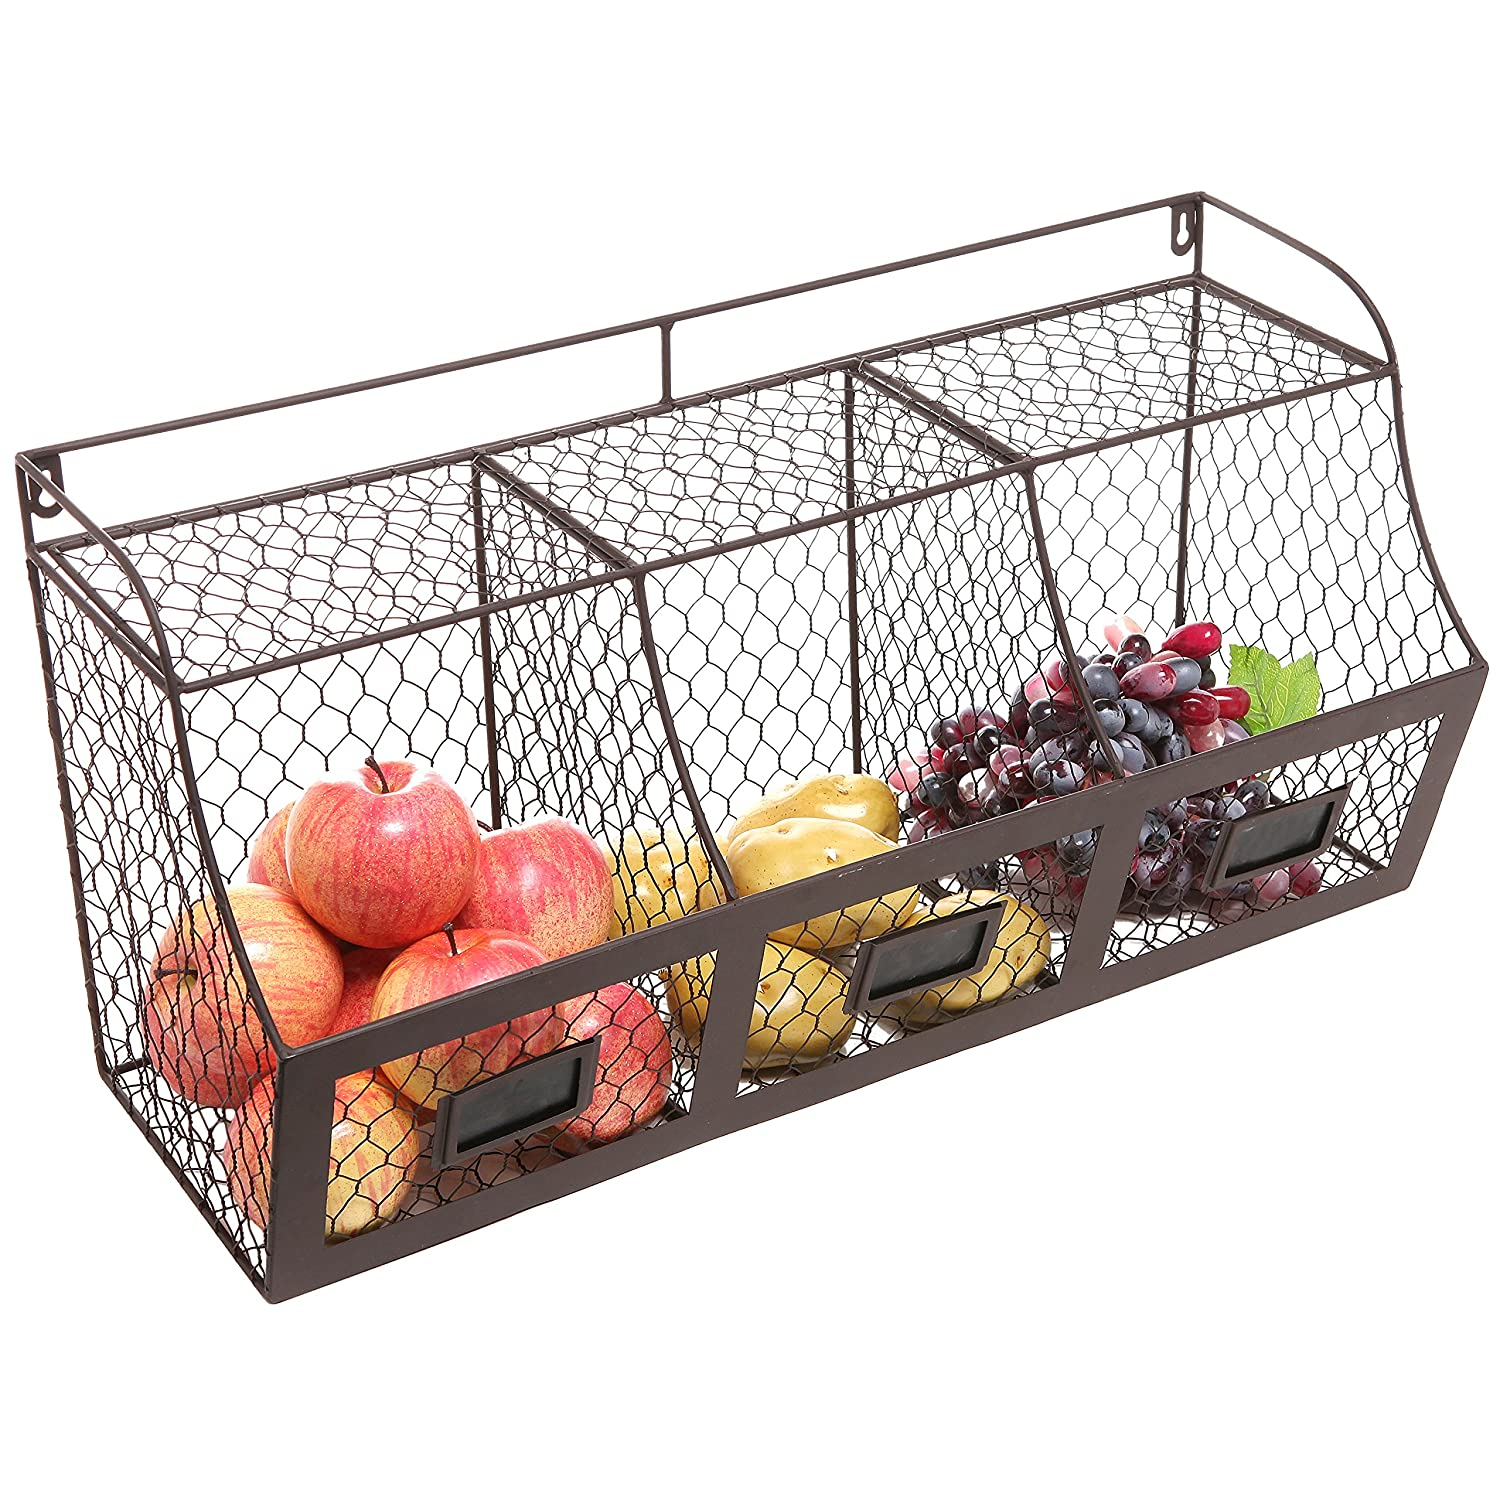 Amazon.com - Large Rustic Brown Metal Wire Wall Mounted Hanging Fruit Basket Storage Organizer Bin w/Chalkboards -  sc 1 st  Amazon.com & Amazon.com - Large Rustic Brown Metal Wire Wall Mounted Hanging ...